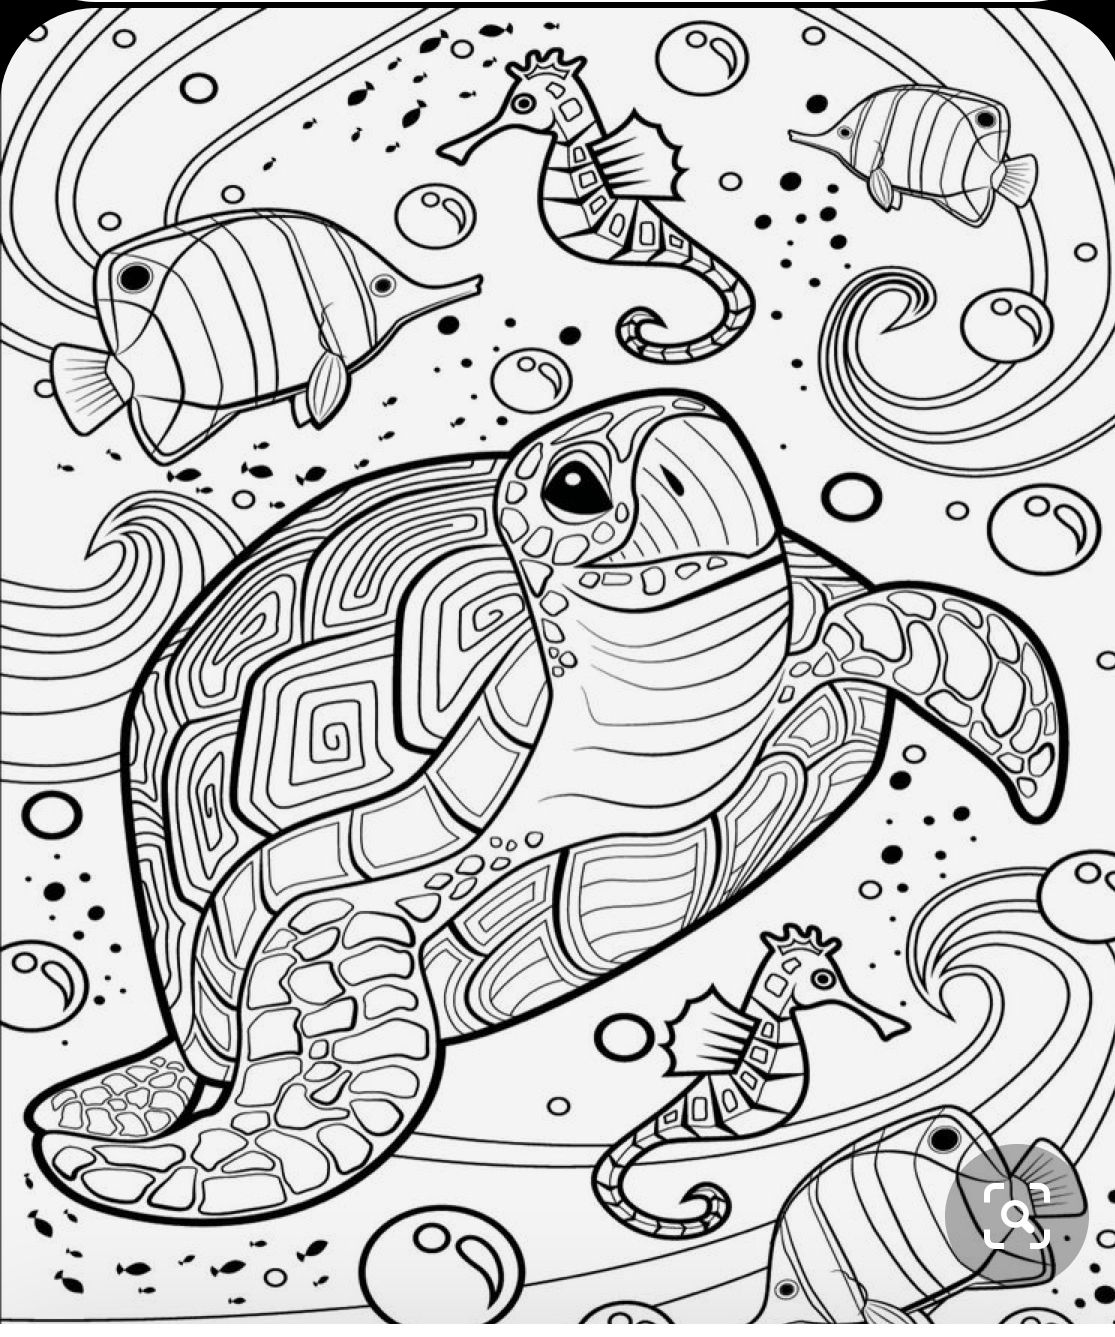 Pin By April Eades On Coloring Pages In 2020 Cute Coloring Pages Mermaid Coloring Pages Animal Coloring Pages